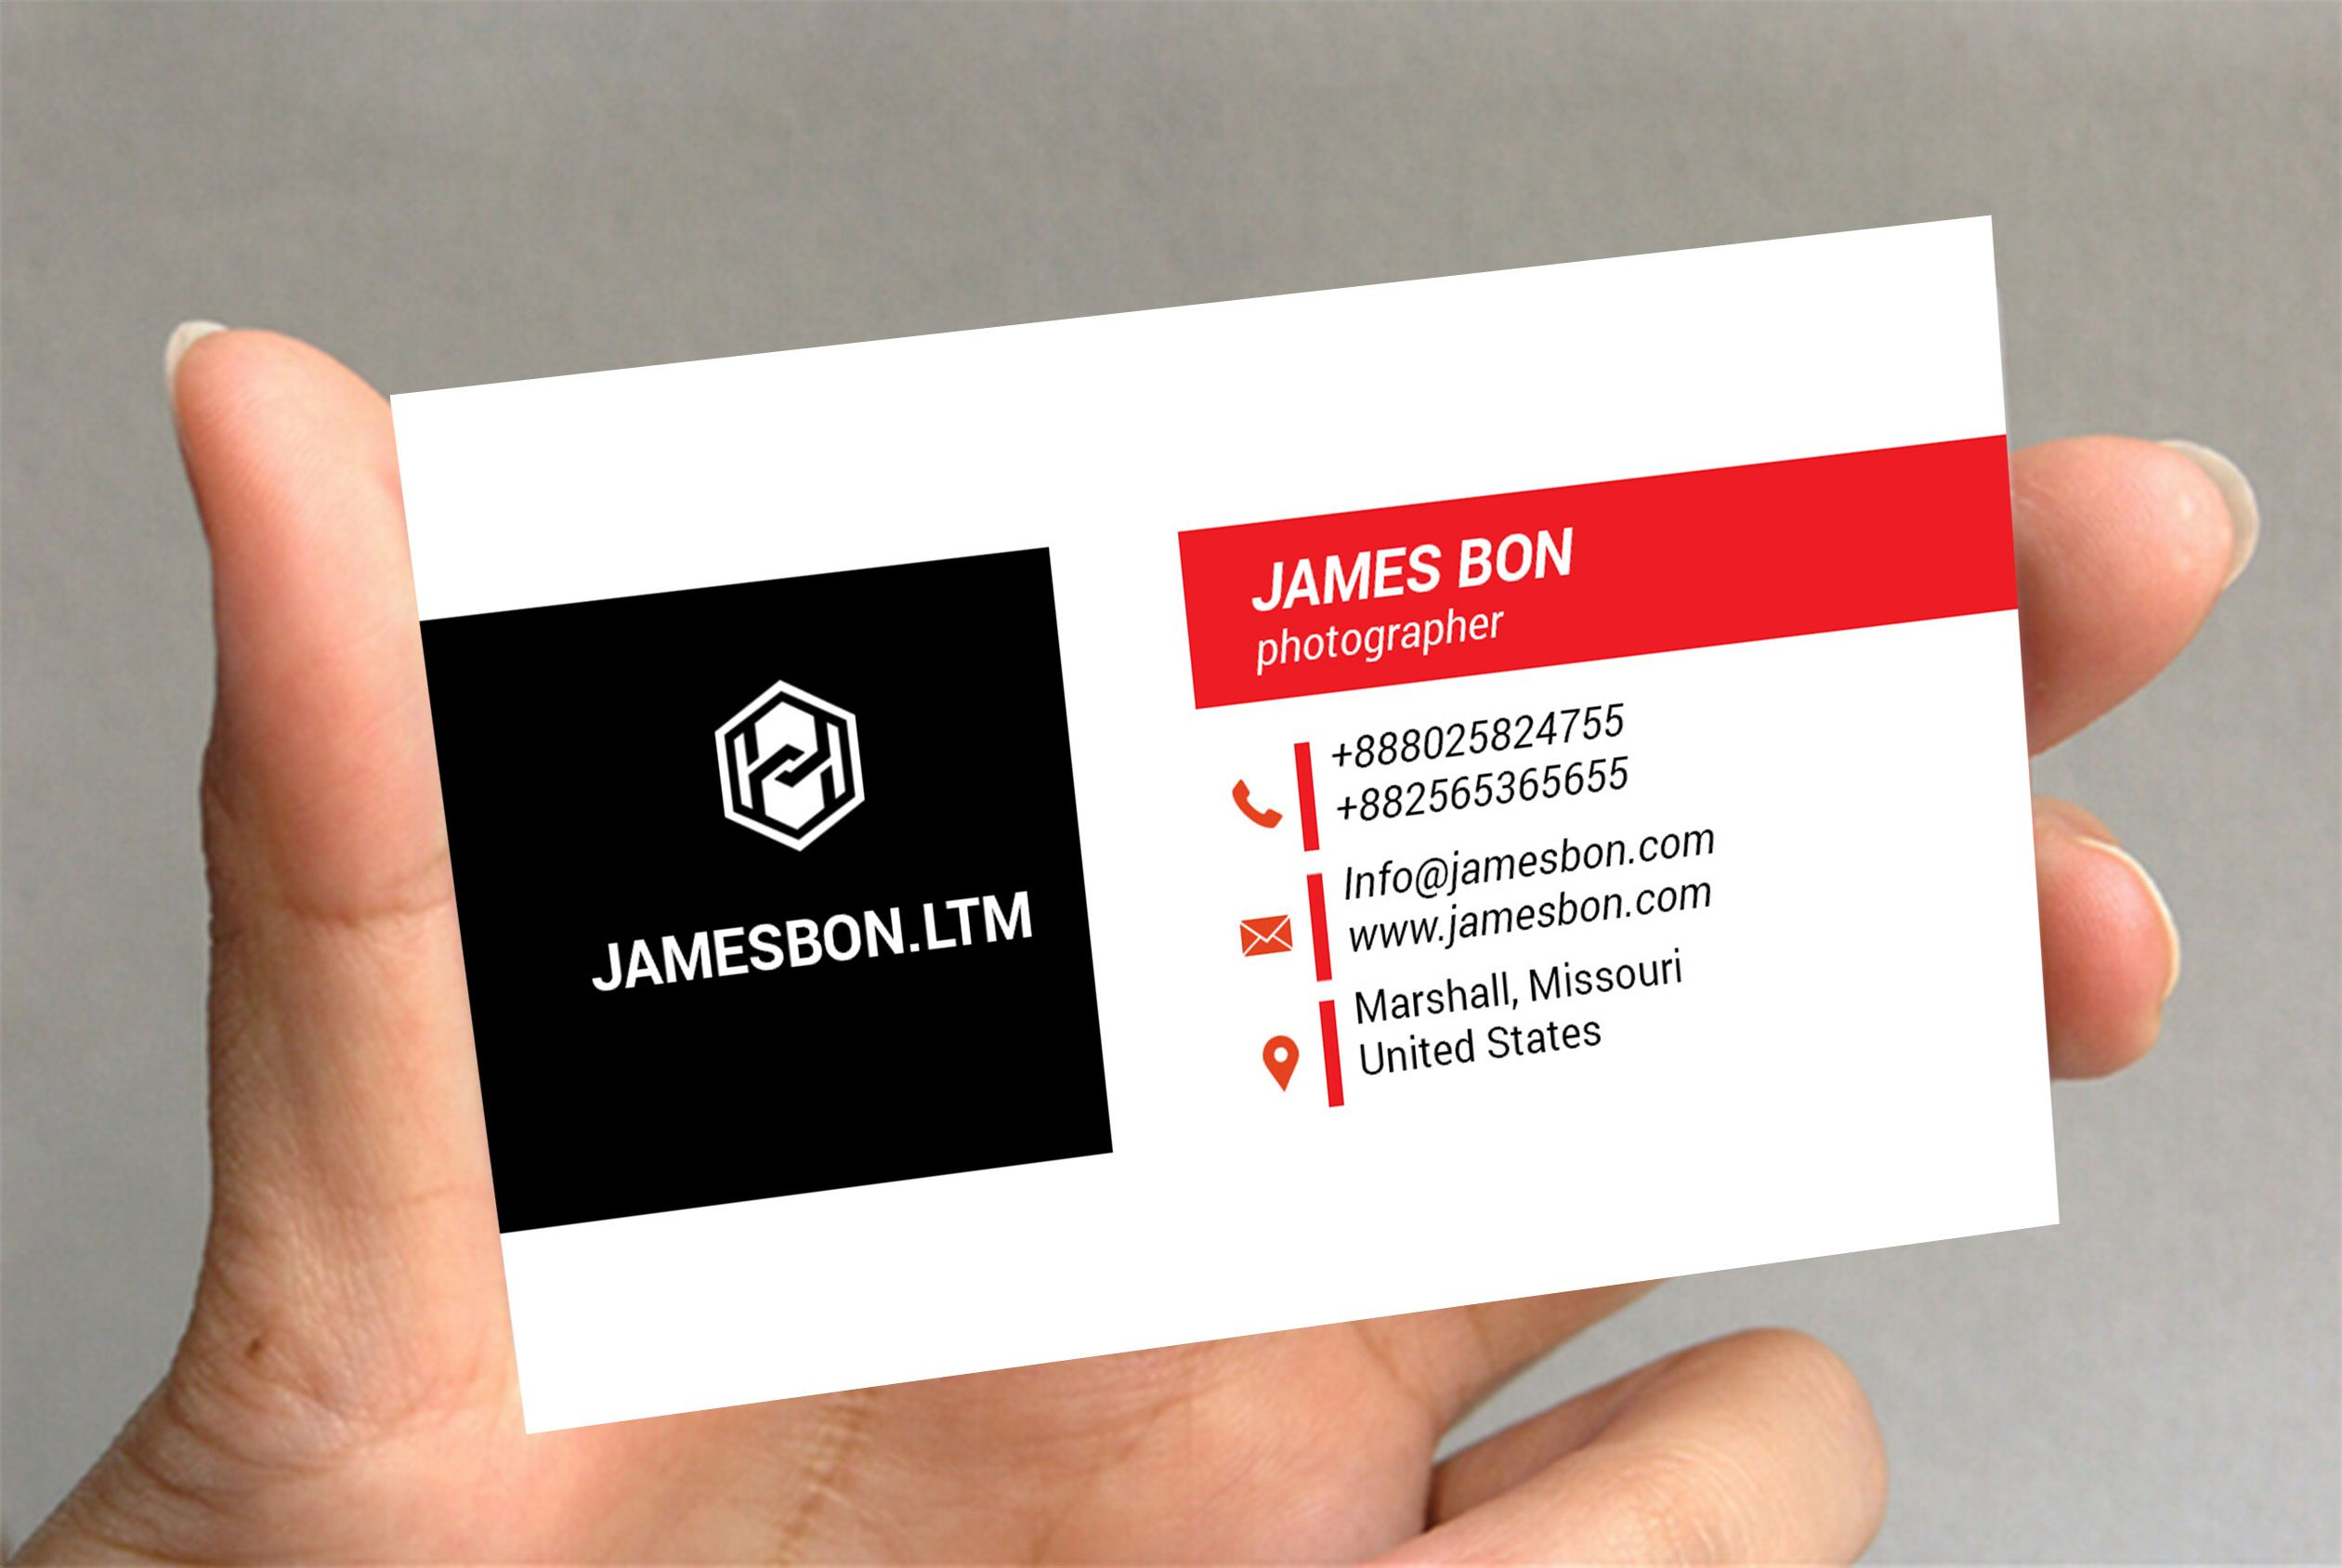 Unique business cards design within 2 hours business cards unique business cards design within 2 hours colourmoves